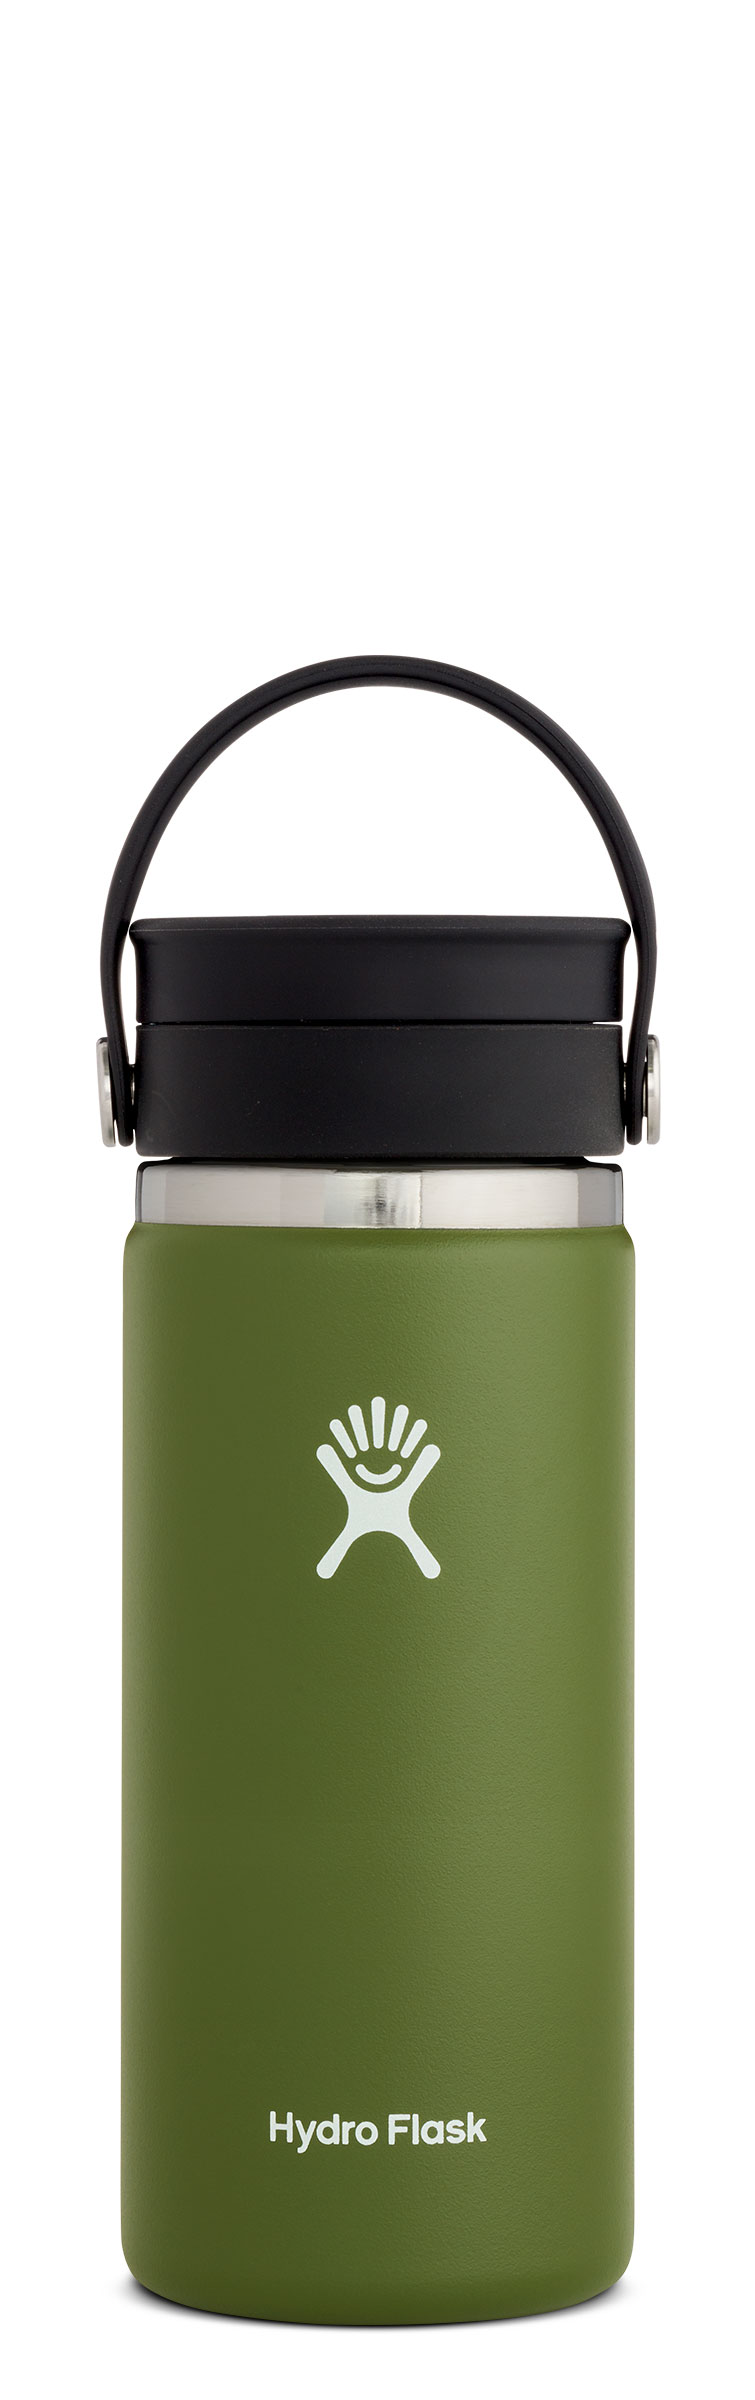 Hydro Flask 16 oz Wide Mouth Flex Sip Olive